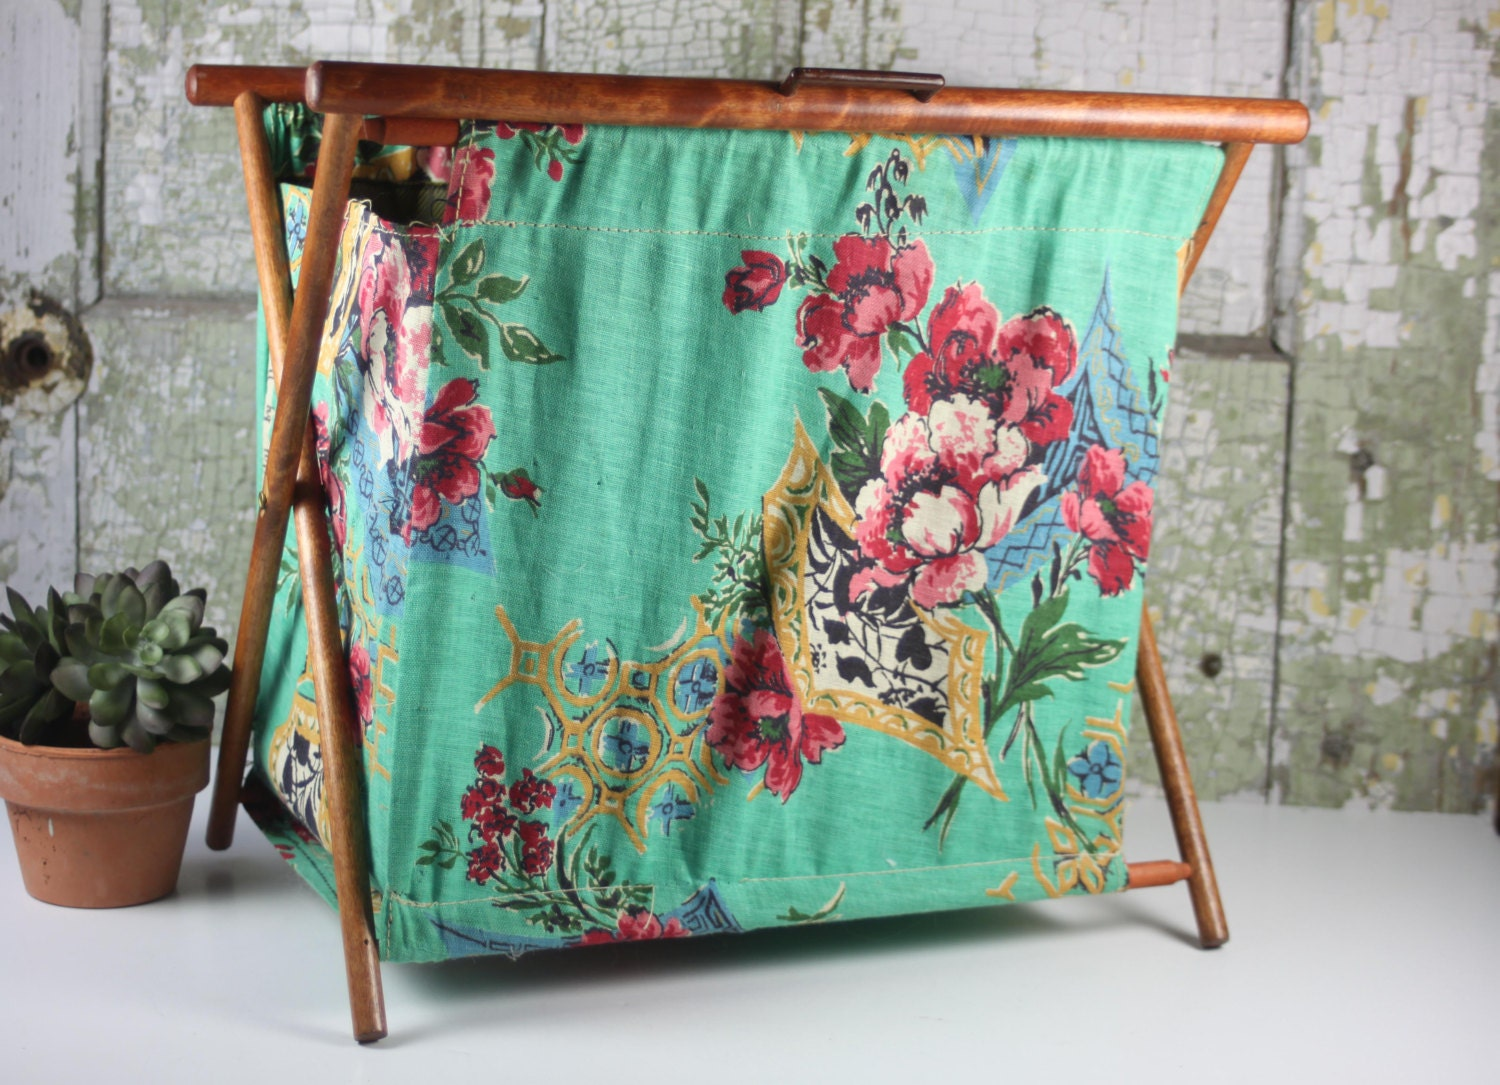 Knitting Bag Stand : Vintage folding knitting bag stand up or sewing